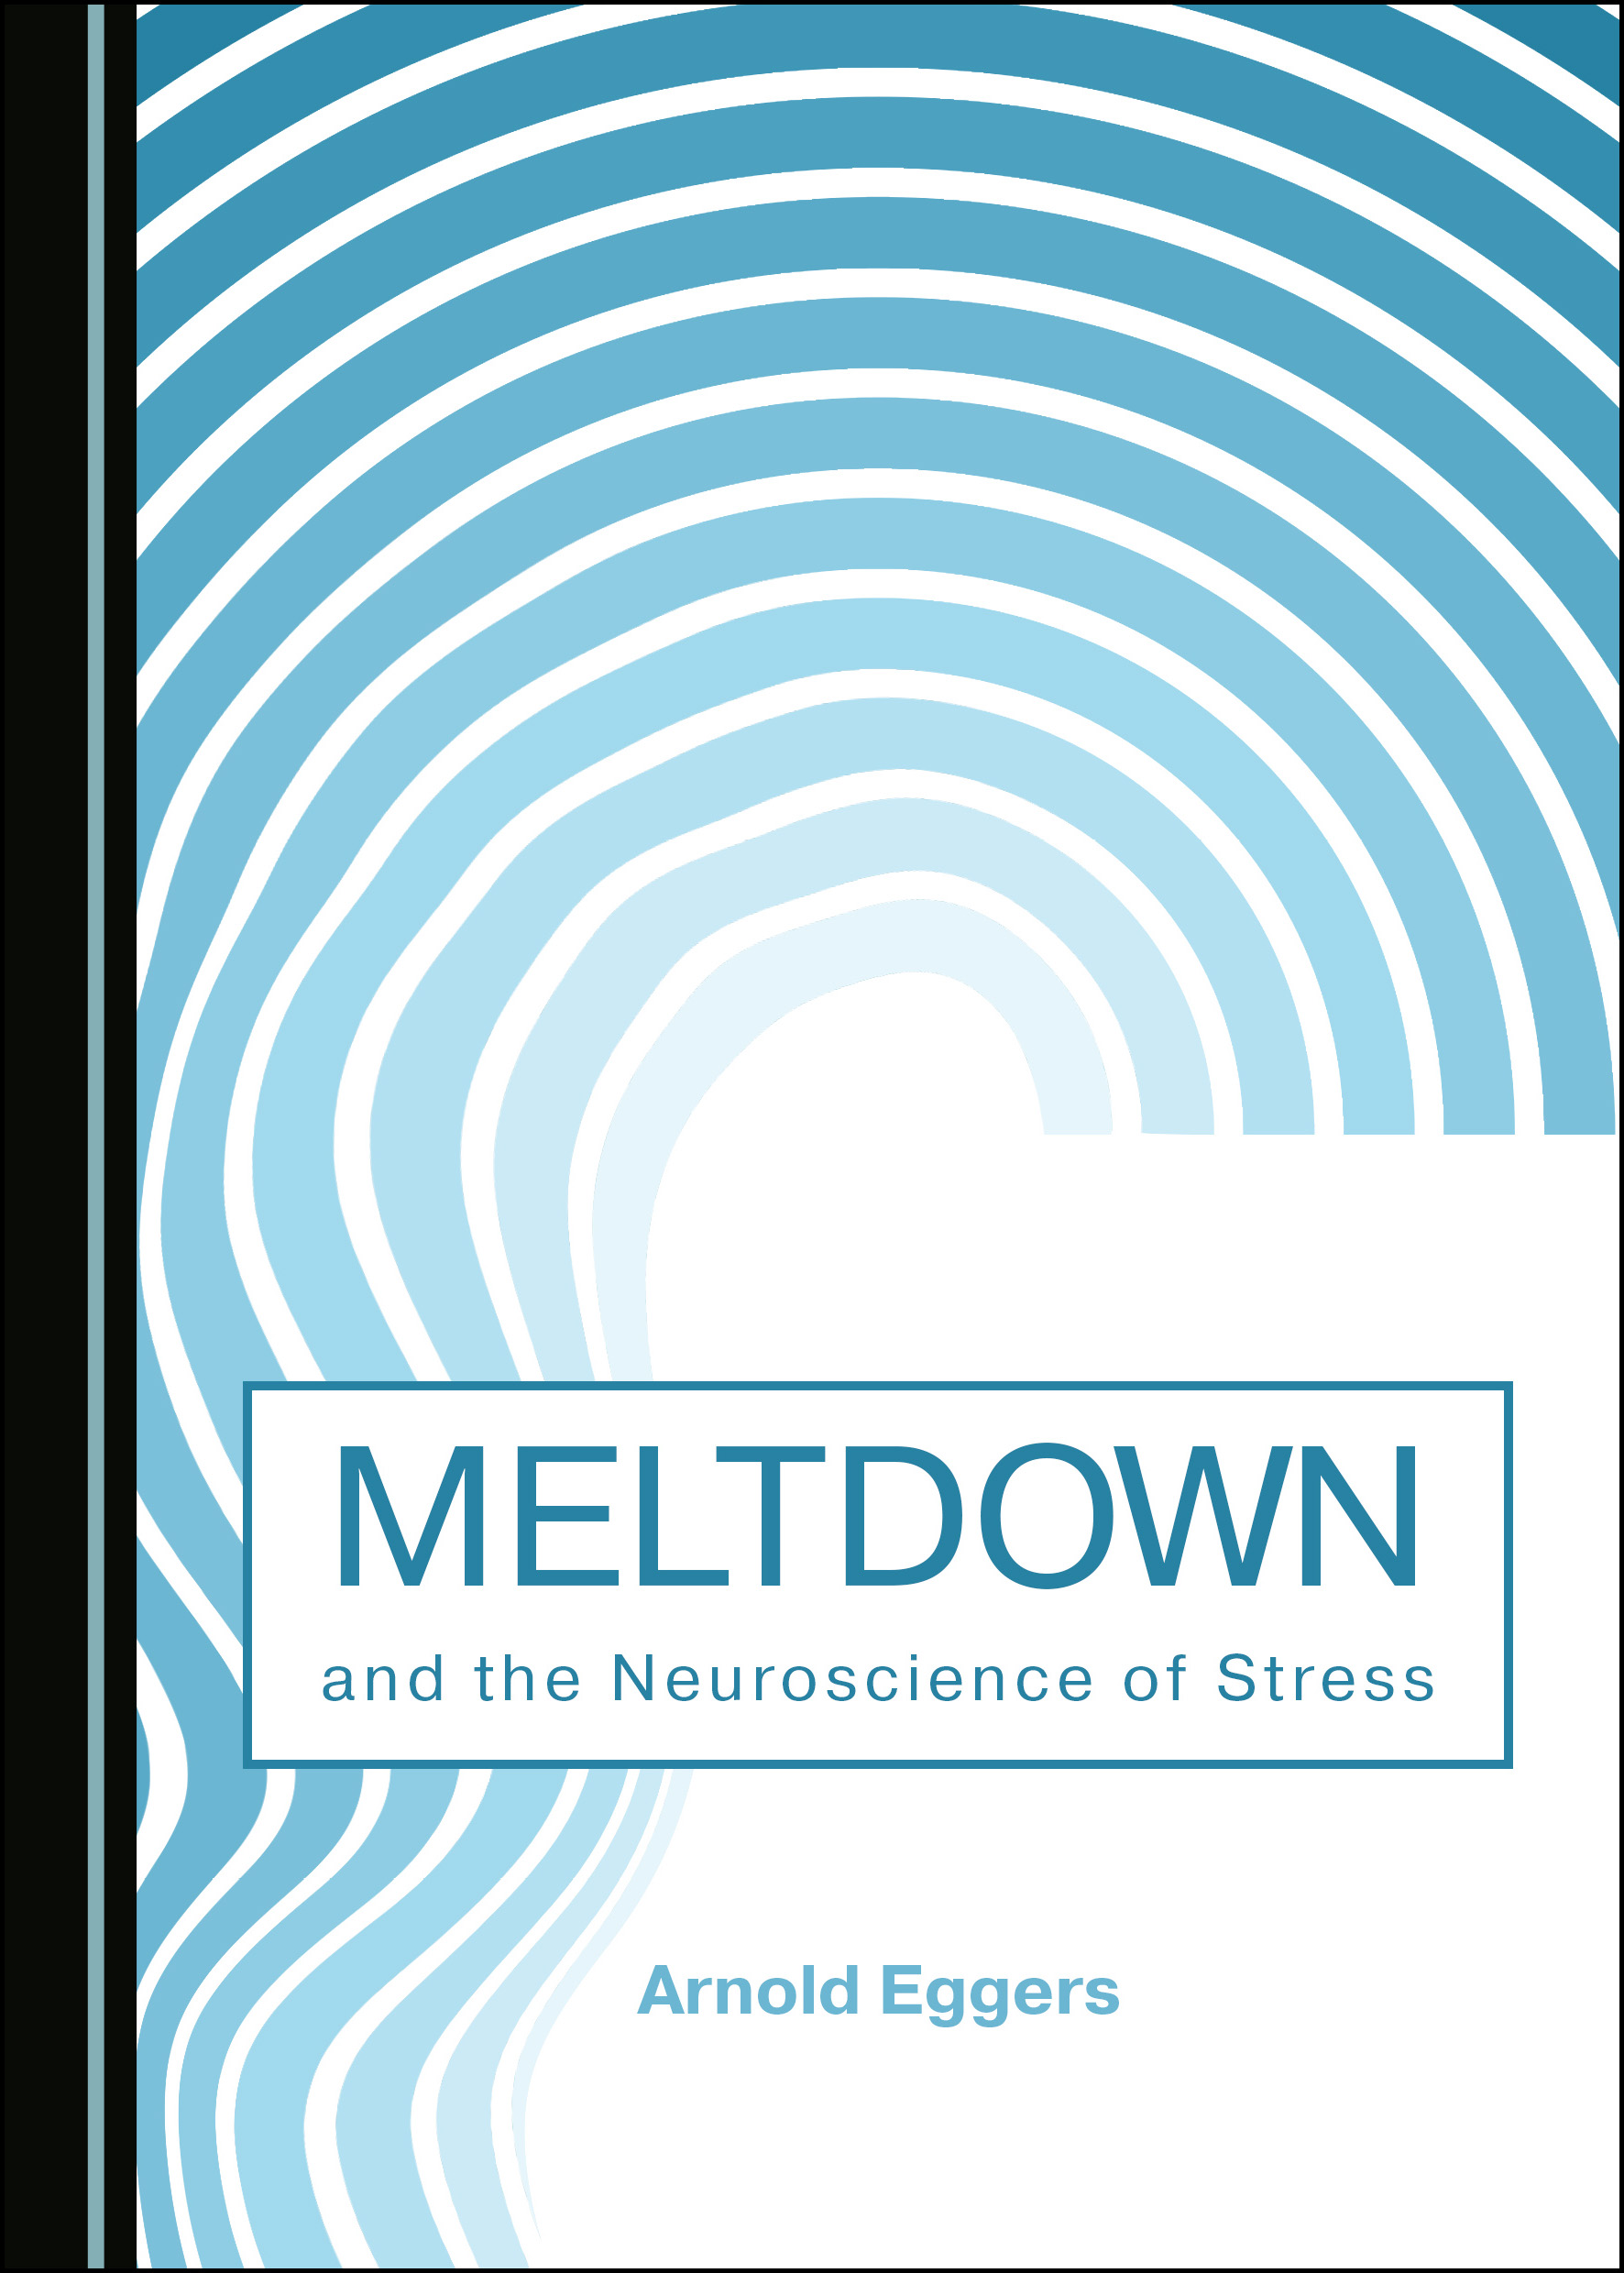 Meltdown and the Neuroscience of Stress